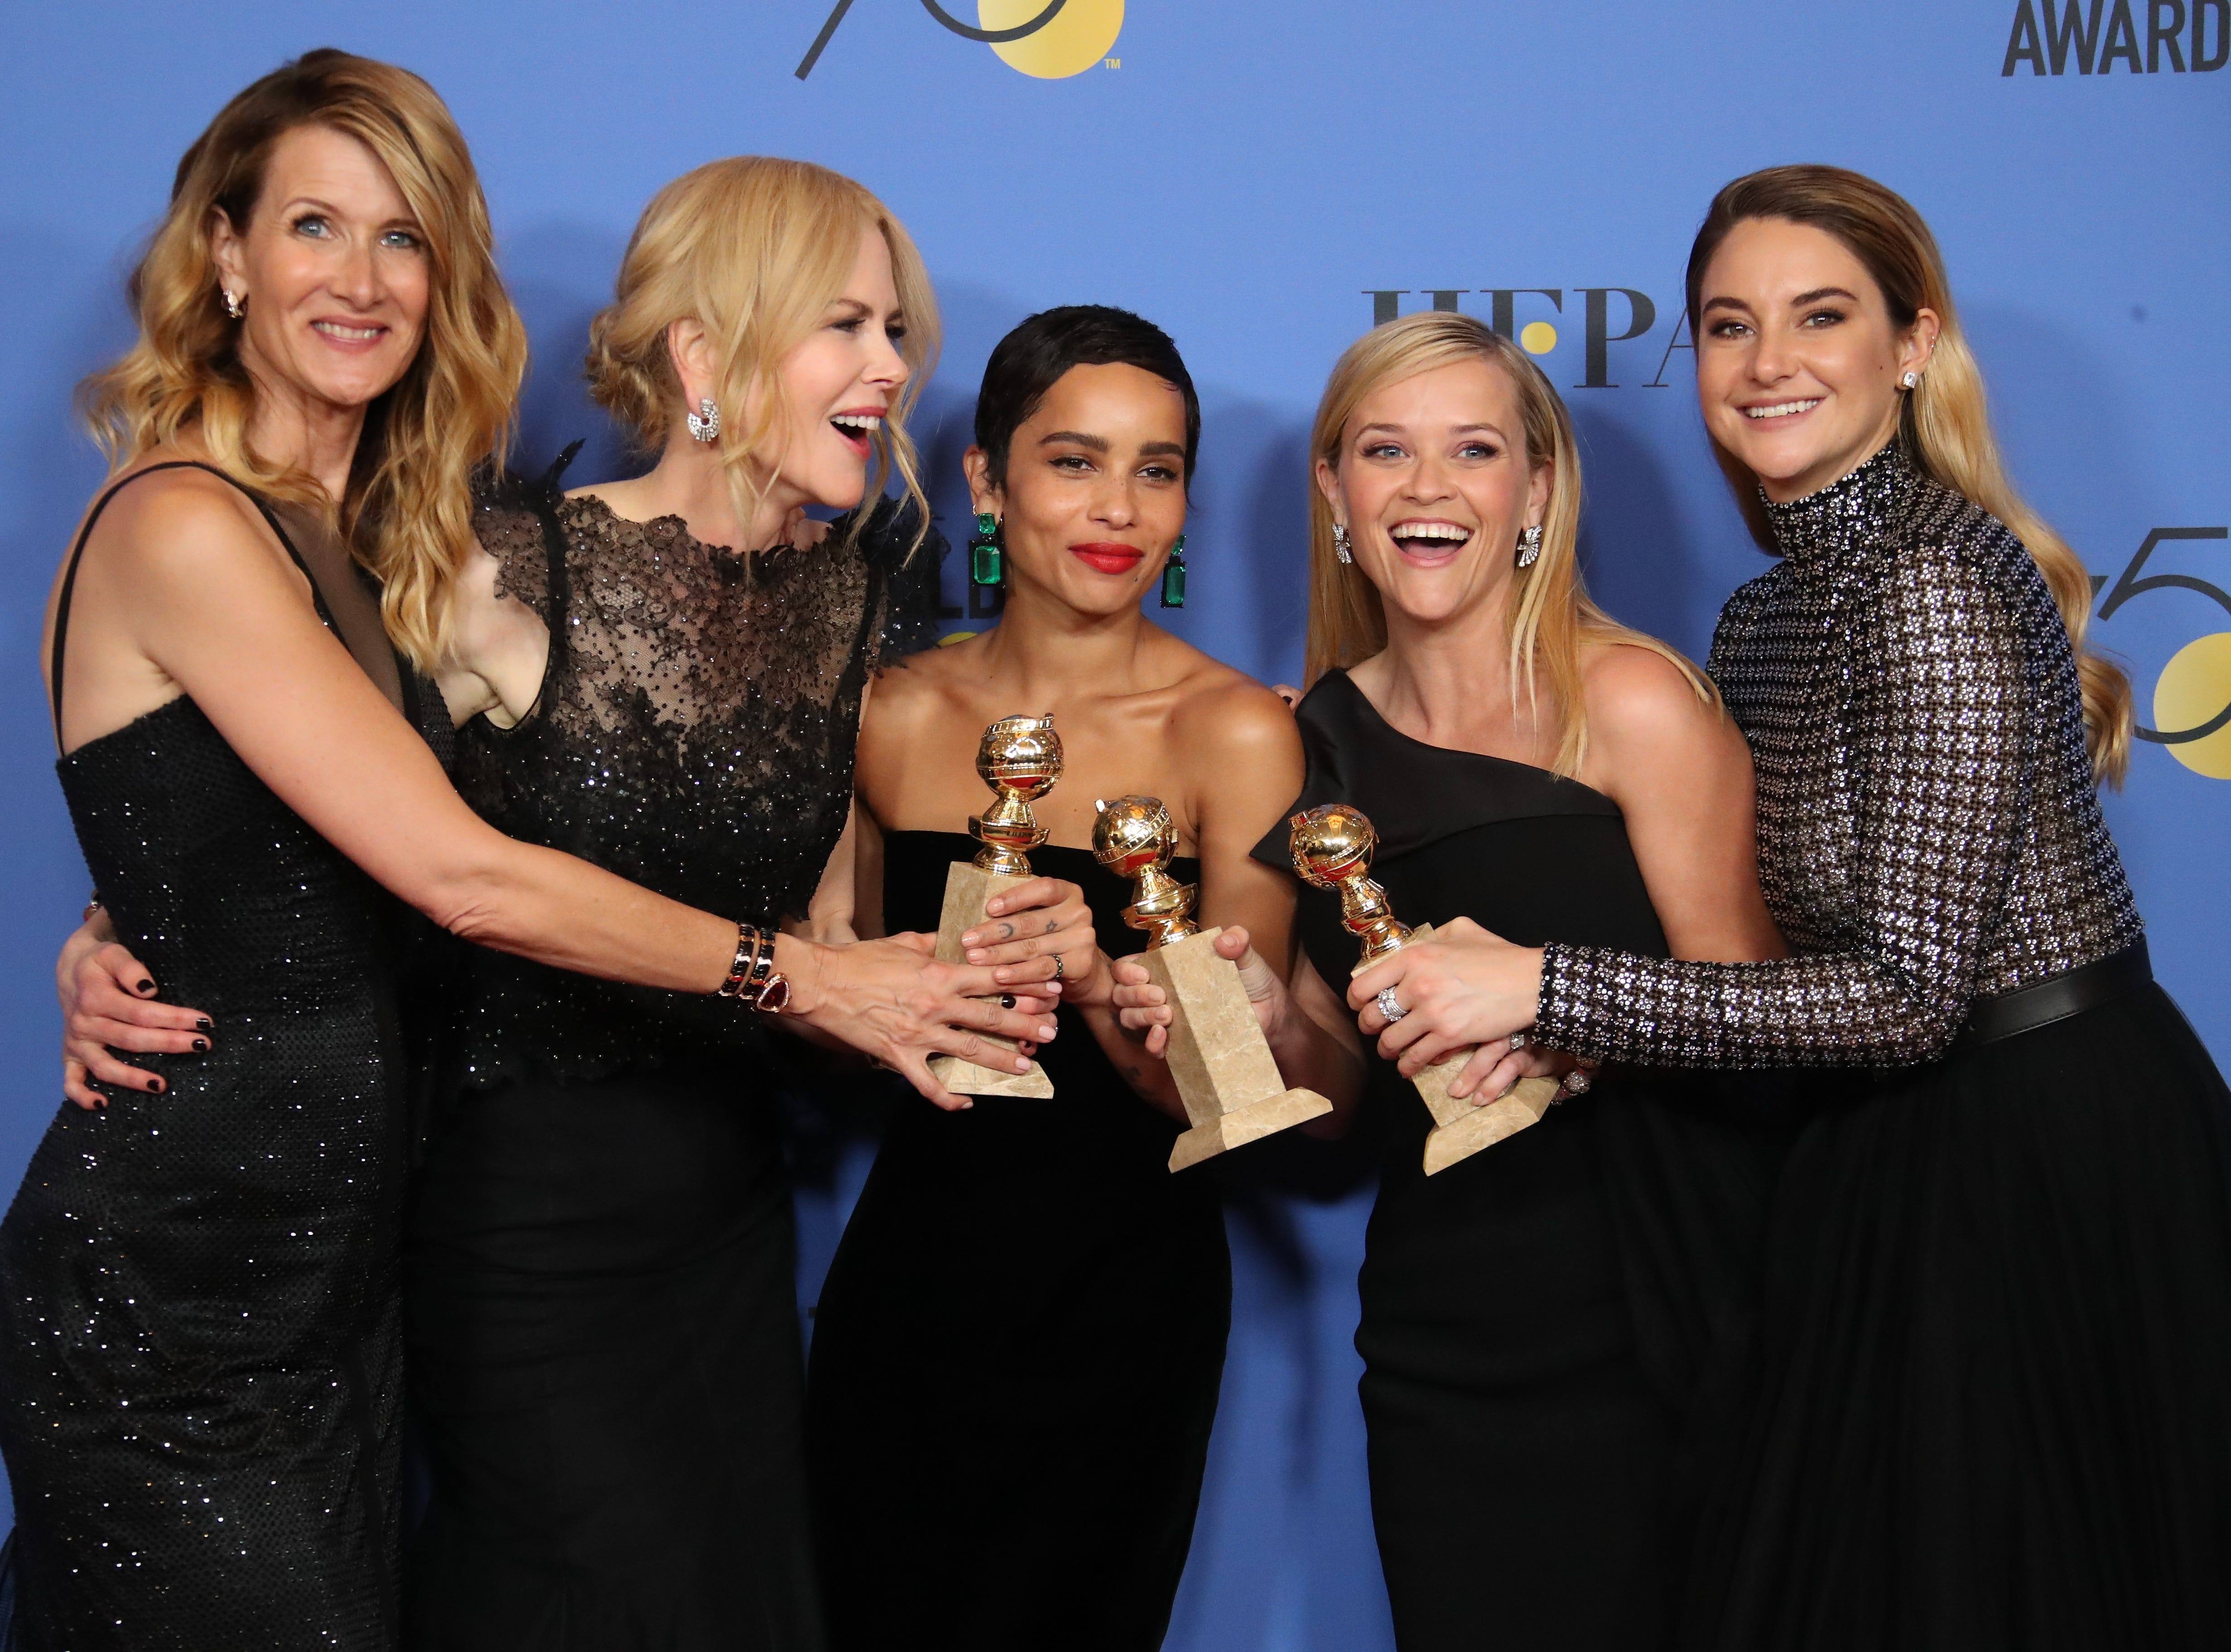 Jan. 7, 2018: Laura Dern, Nicole Kidman, Zoe Kravitz, Reese Witherspoon, and Shailene Woodley pose with their awards in the photo room at the 75th Golden Globe Awards.